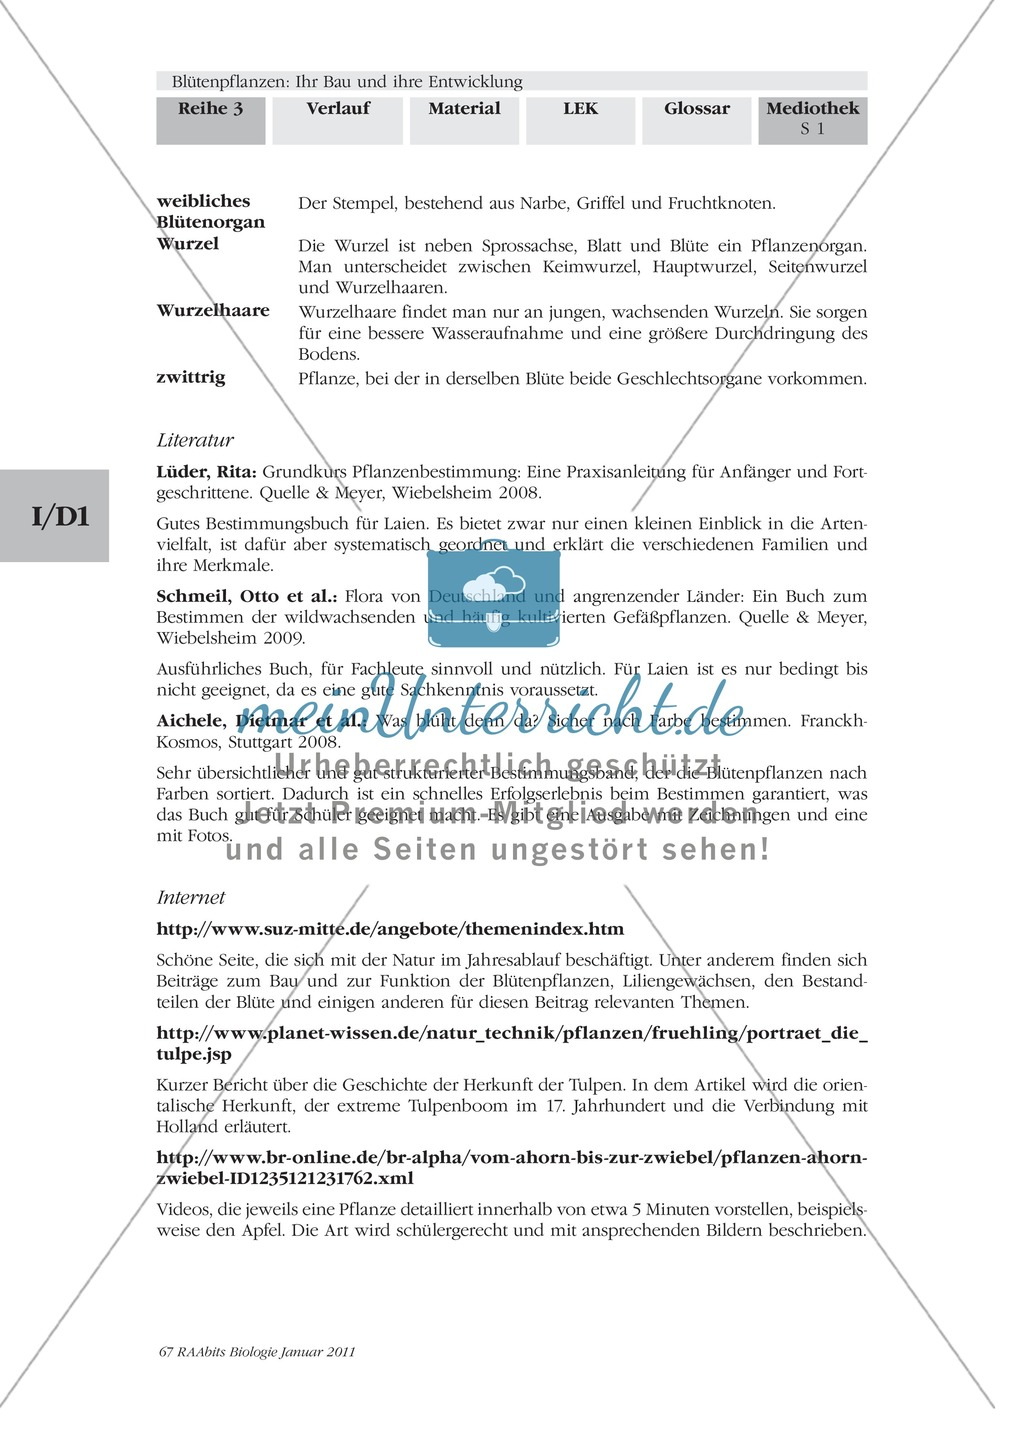 glossar wortbeschreibung zu bl tenpflanzen best ubung. Black Bedroom Furniture Sets. Home Design Ideas